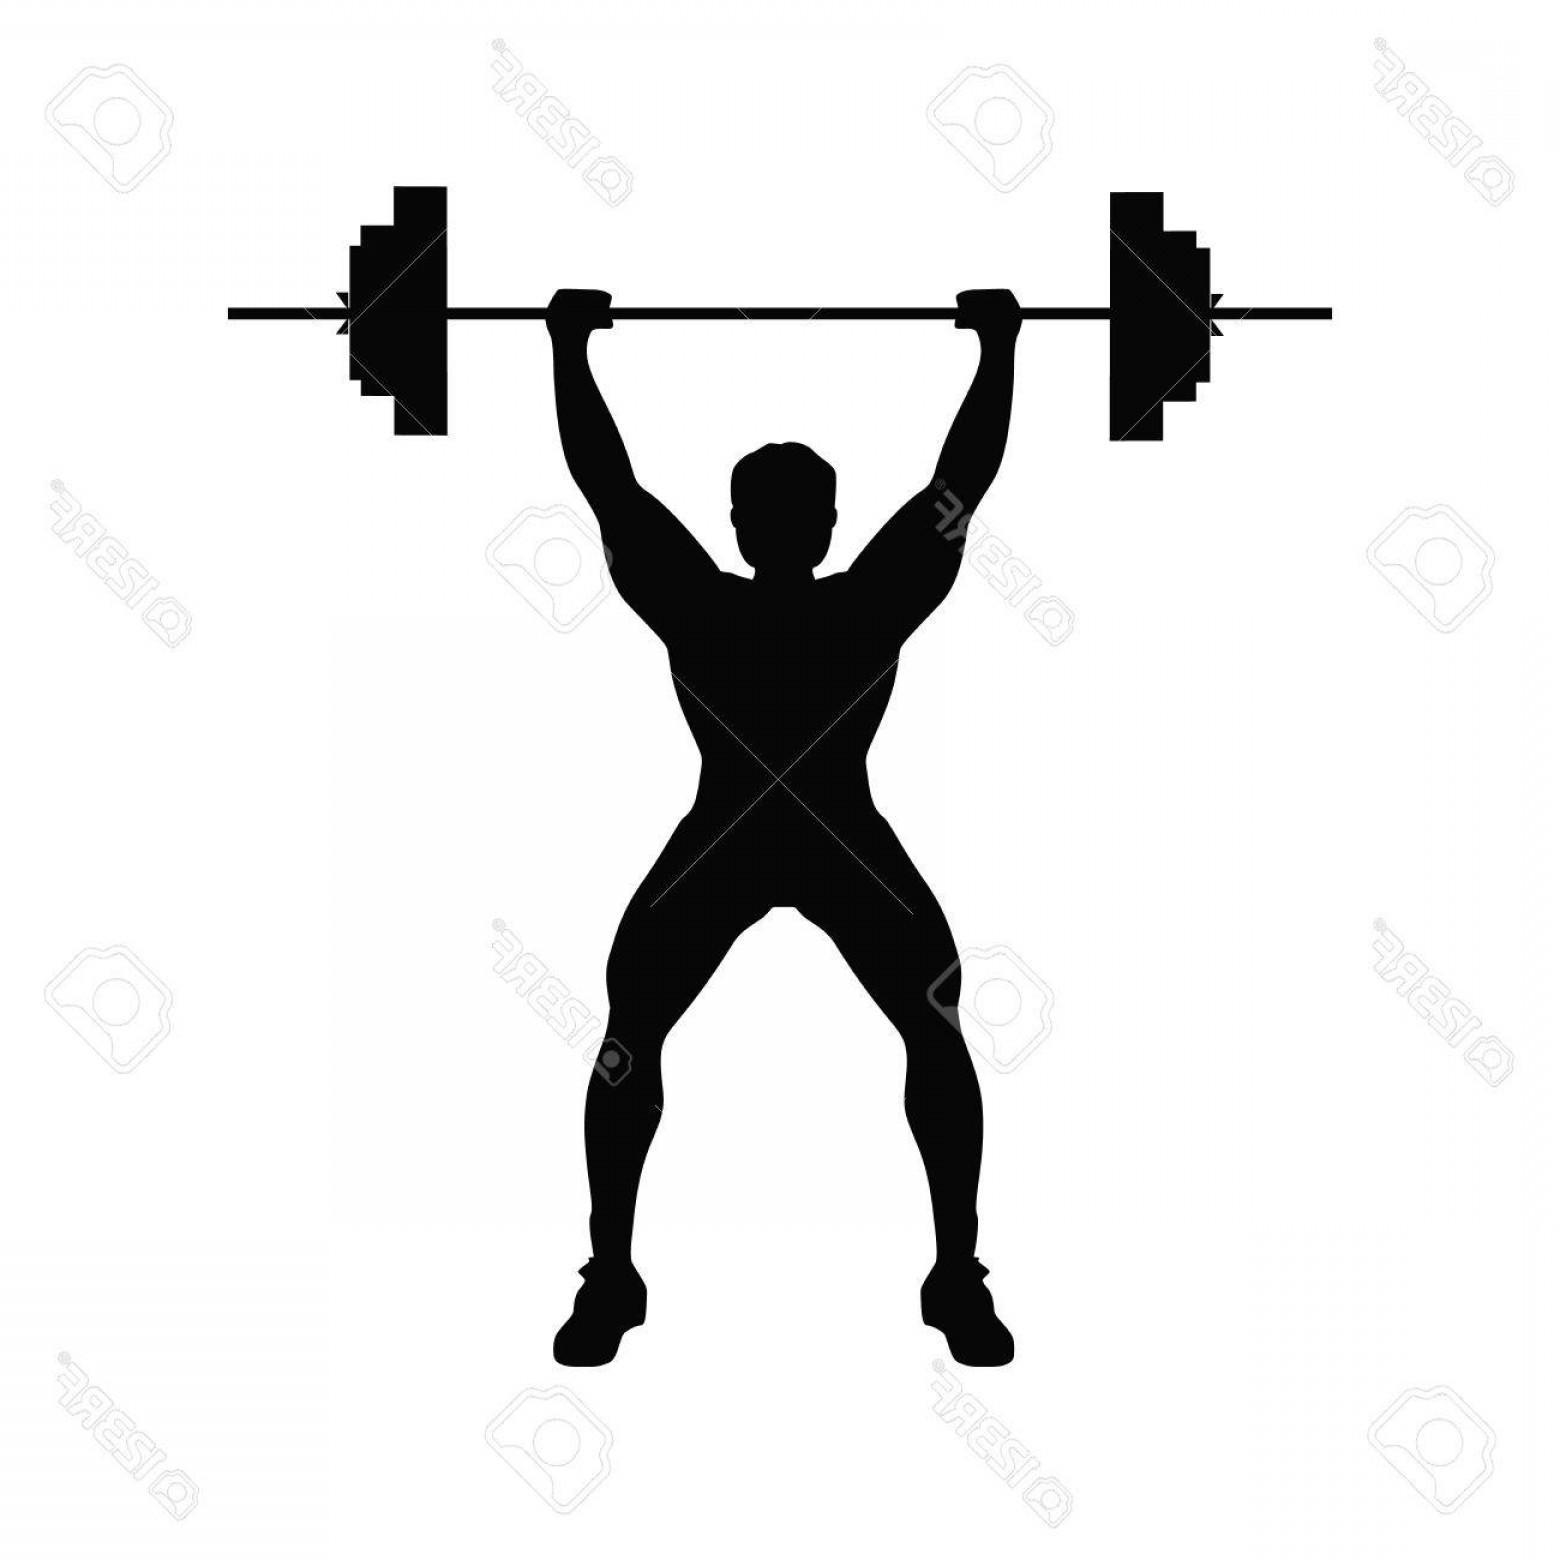 Vector Weight Lifting: Photostock Vector Man Doing Weight Lifting Isolated Black Silhouette Of A Man Doing Weight Lifting On White Background